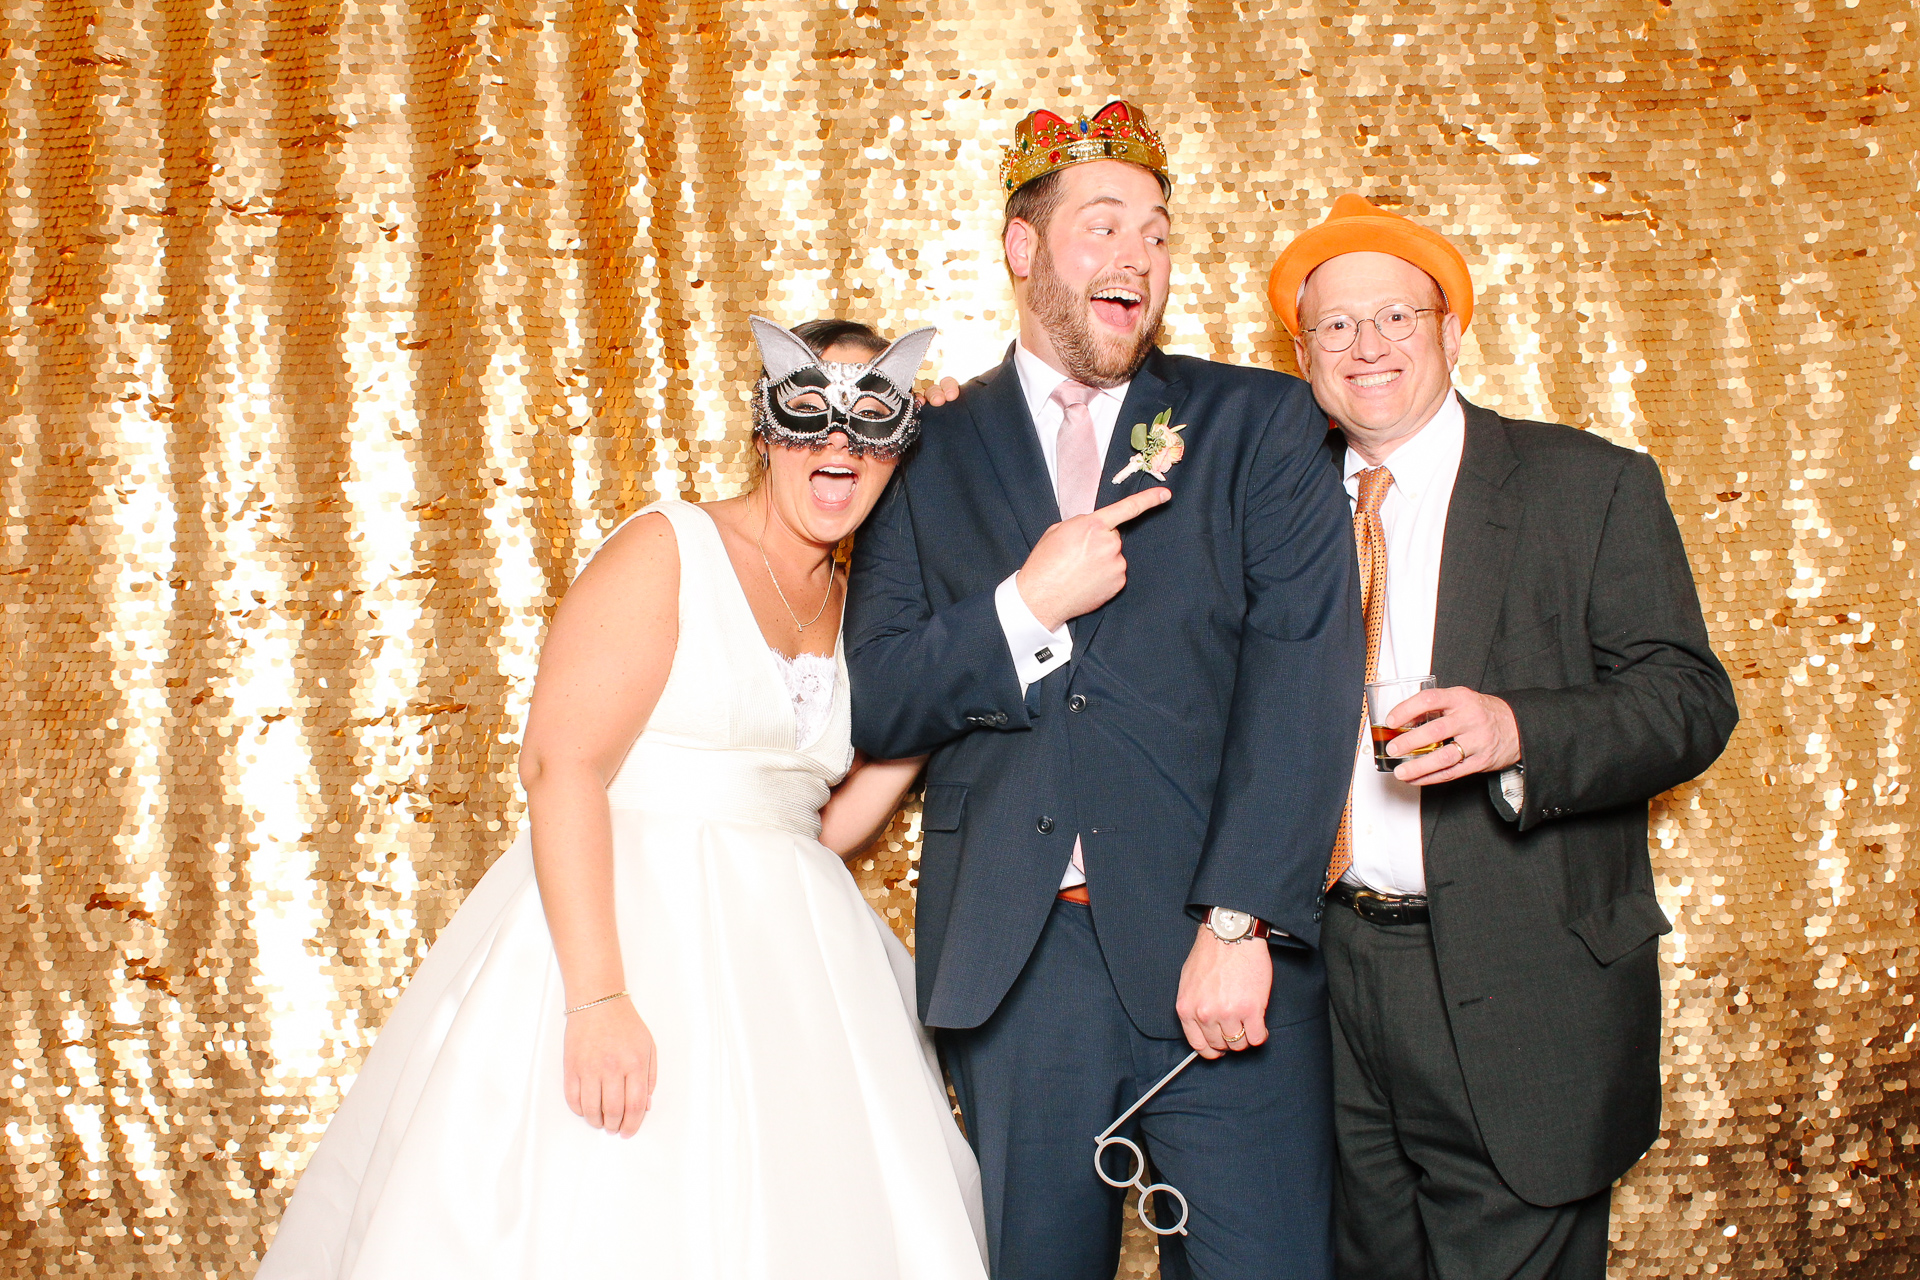 00143 Union Club Wedding Photobooth in Cleveland.jpg